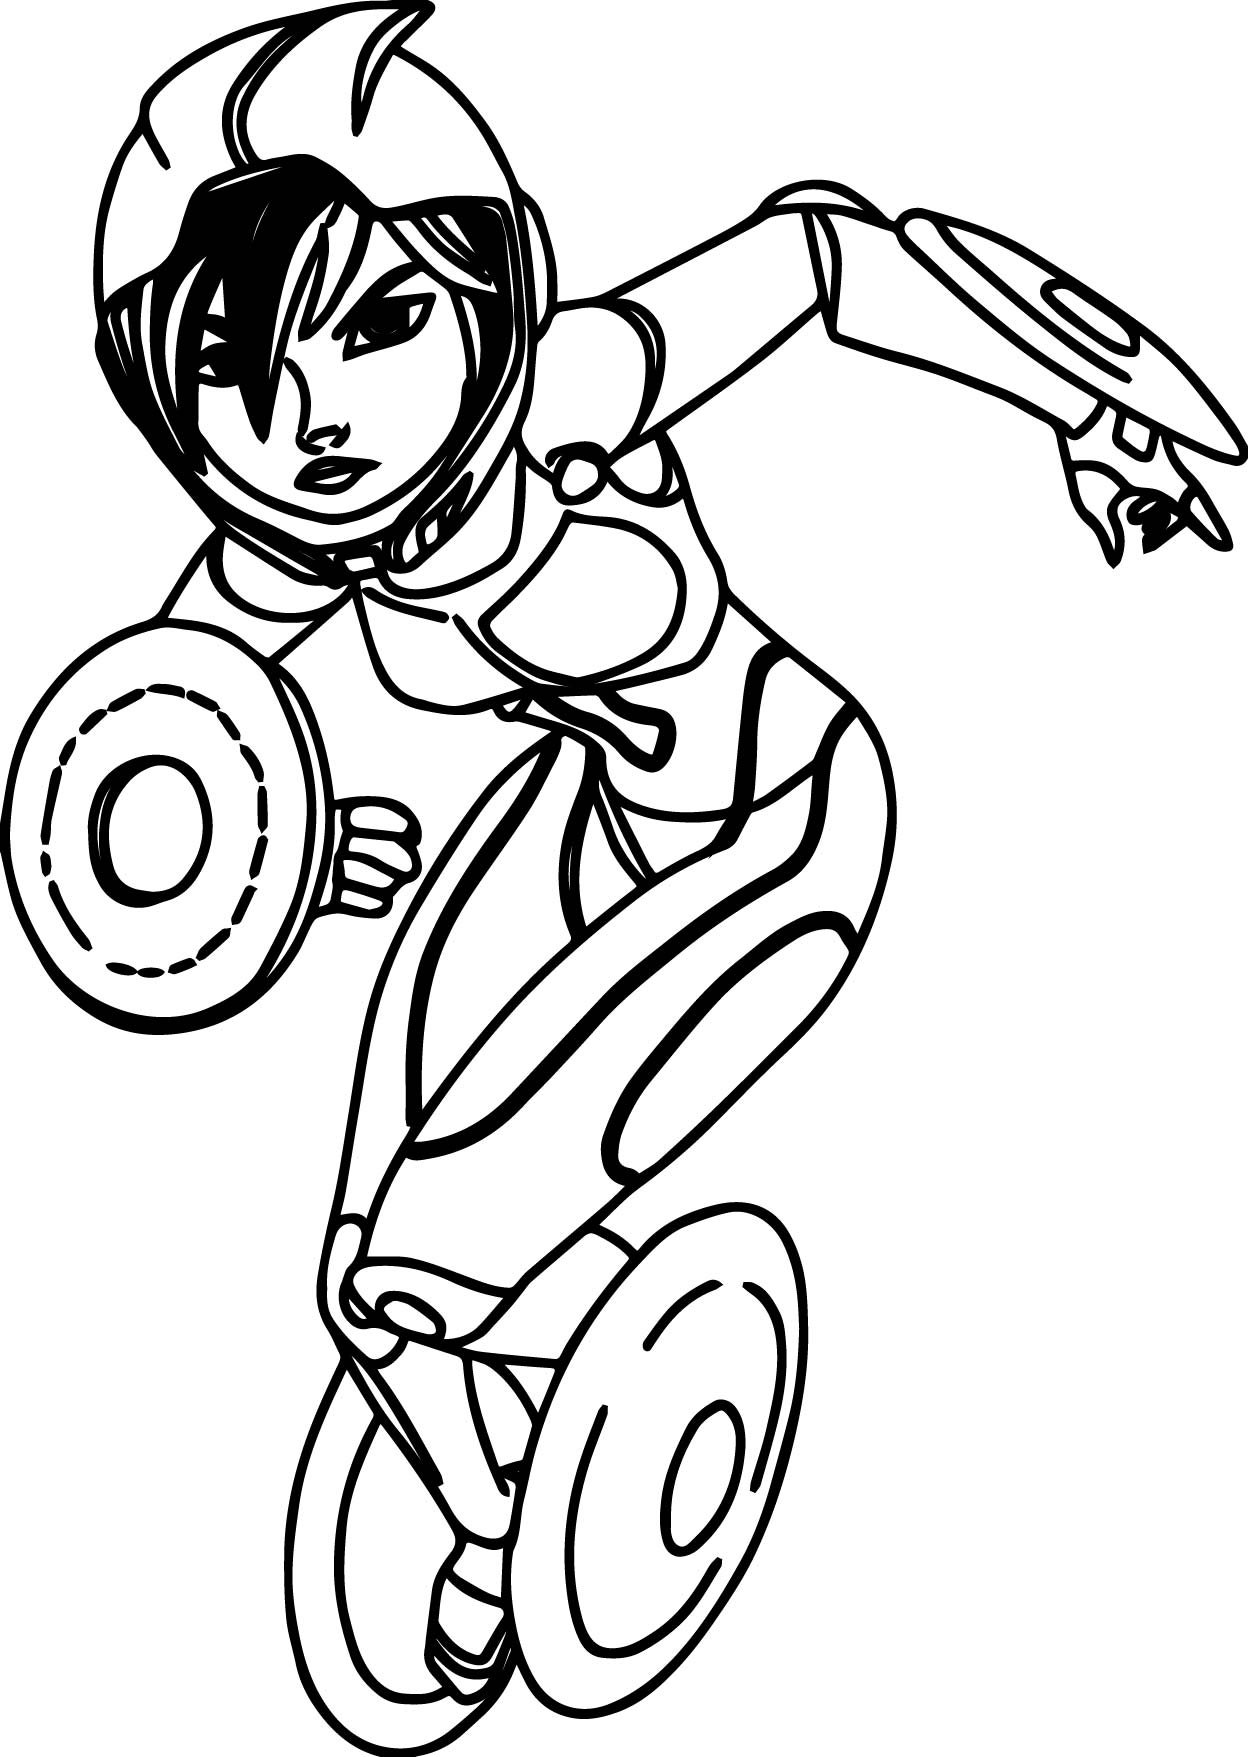 Big Hero 6 Characters Gogo Tomago Coloring Page Wecoloringpage